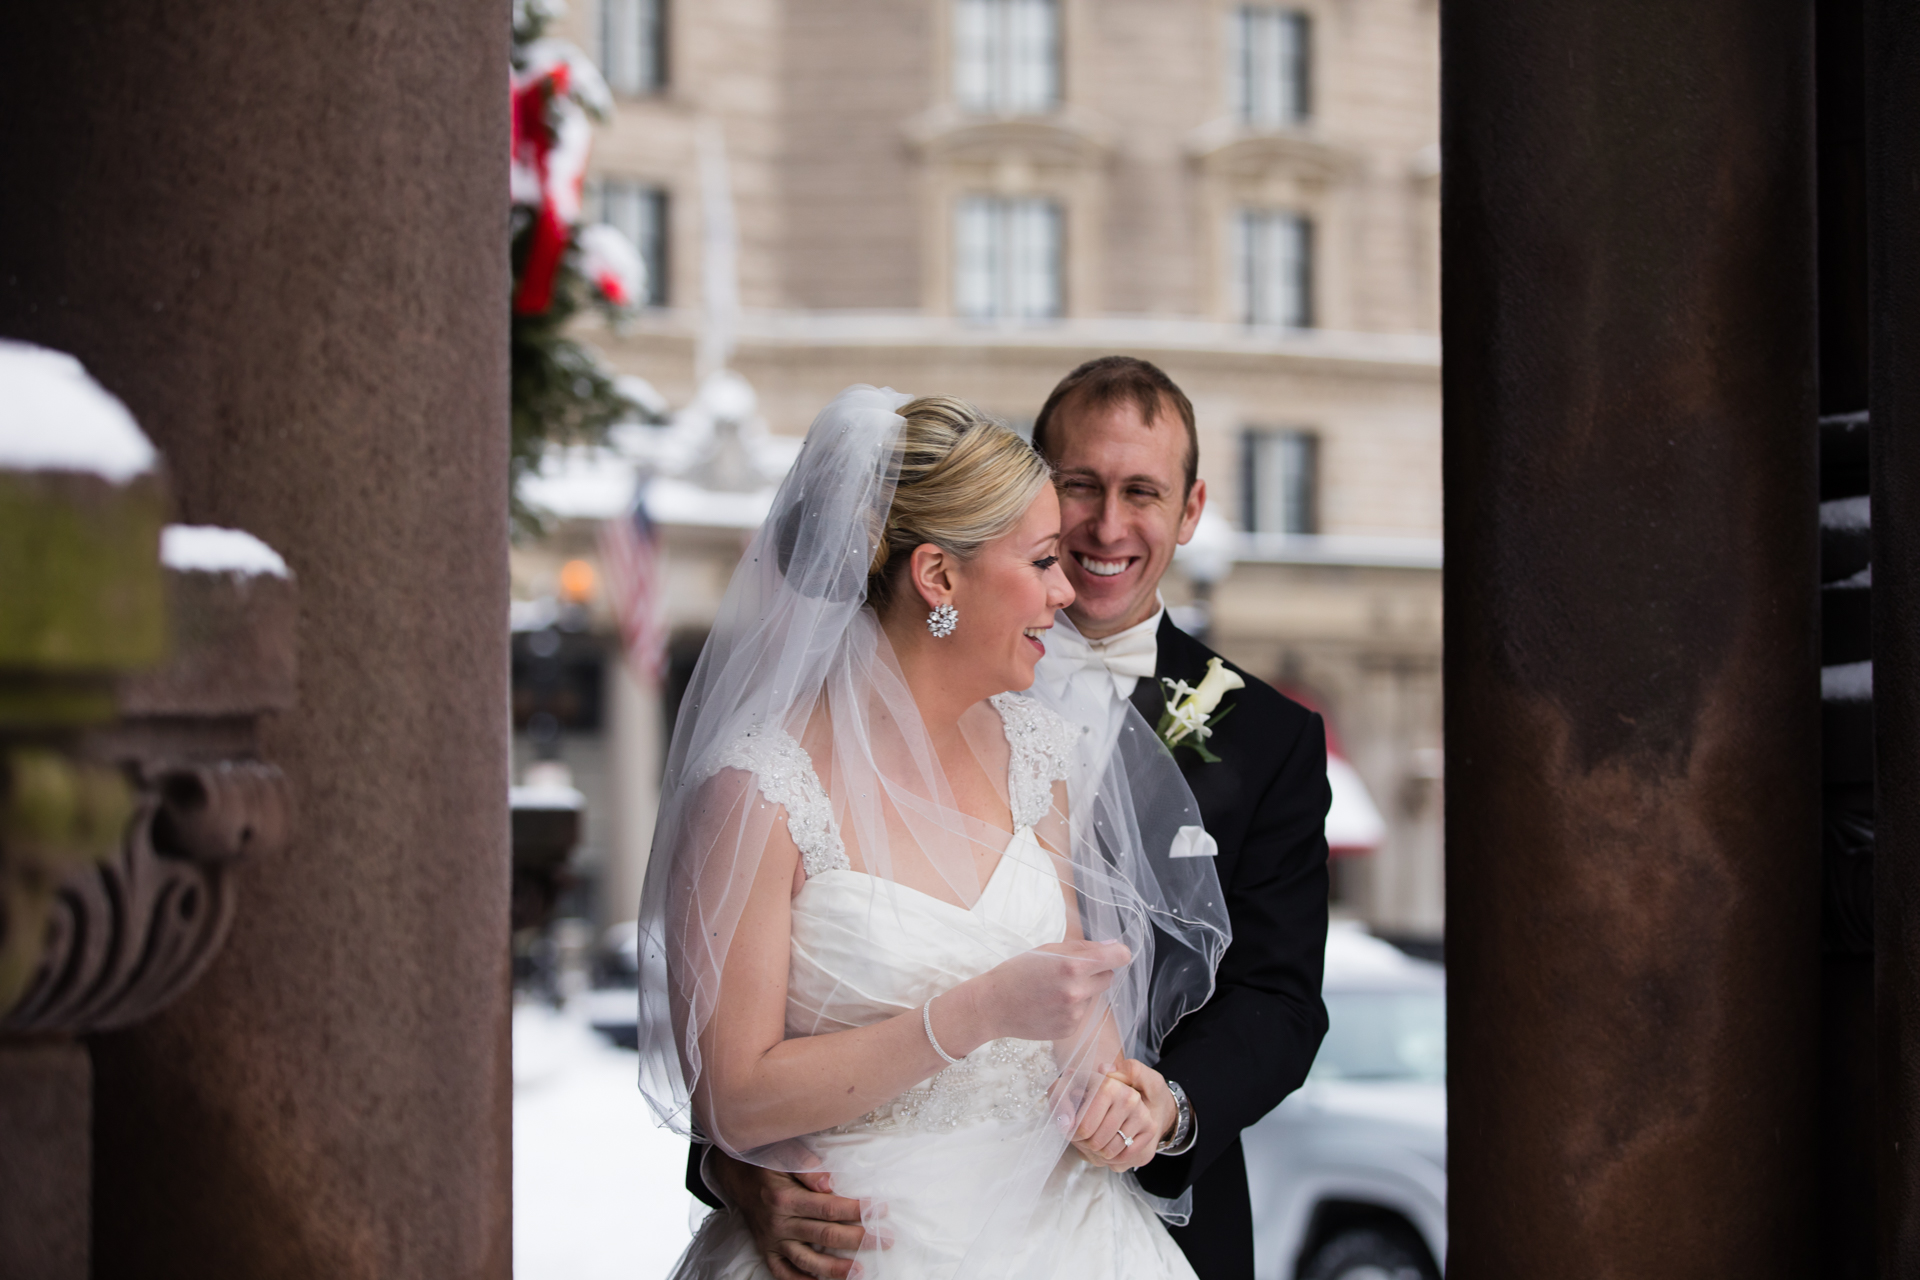 Boston-Fairmont-Copley-Plaza-Wedding-AmandaMorgan-Photography-33.jpg